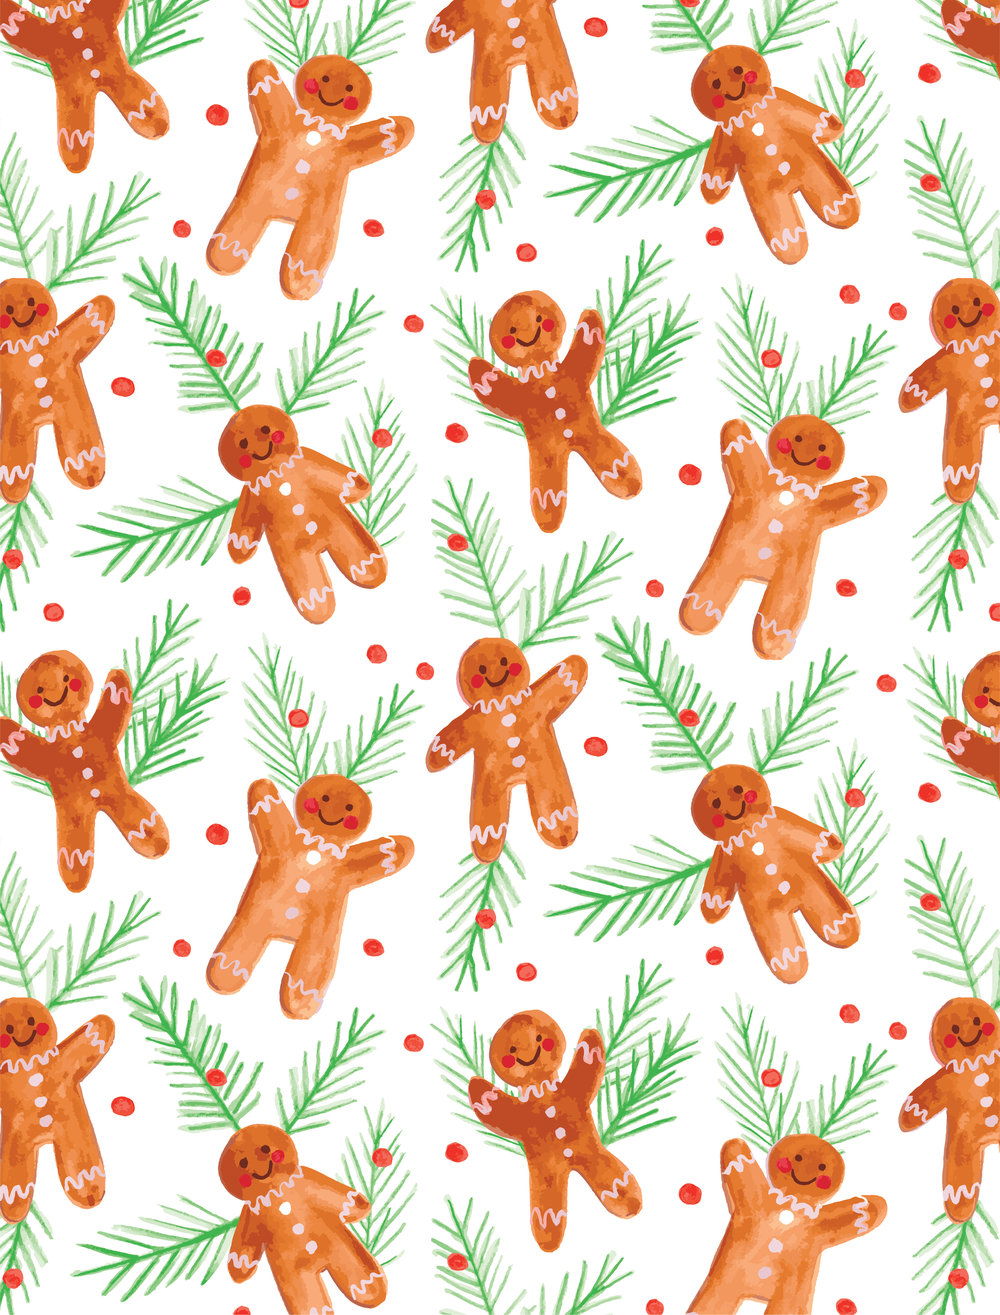 Hol18_GingerbreadPeople_Pattern-02.jpg